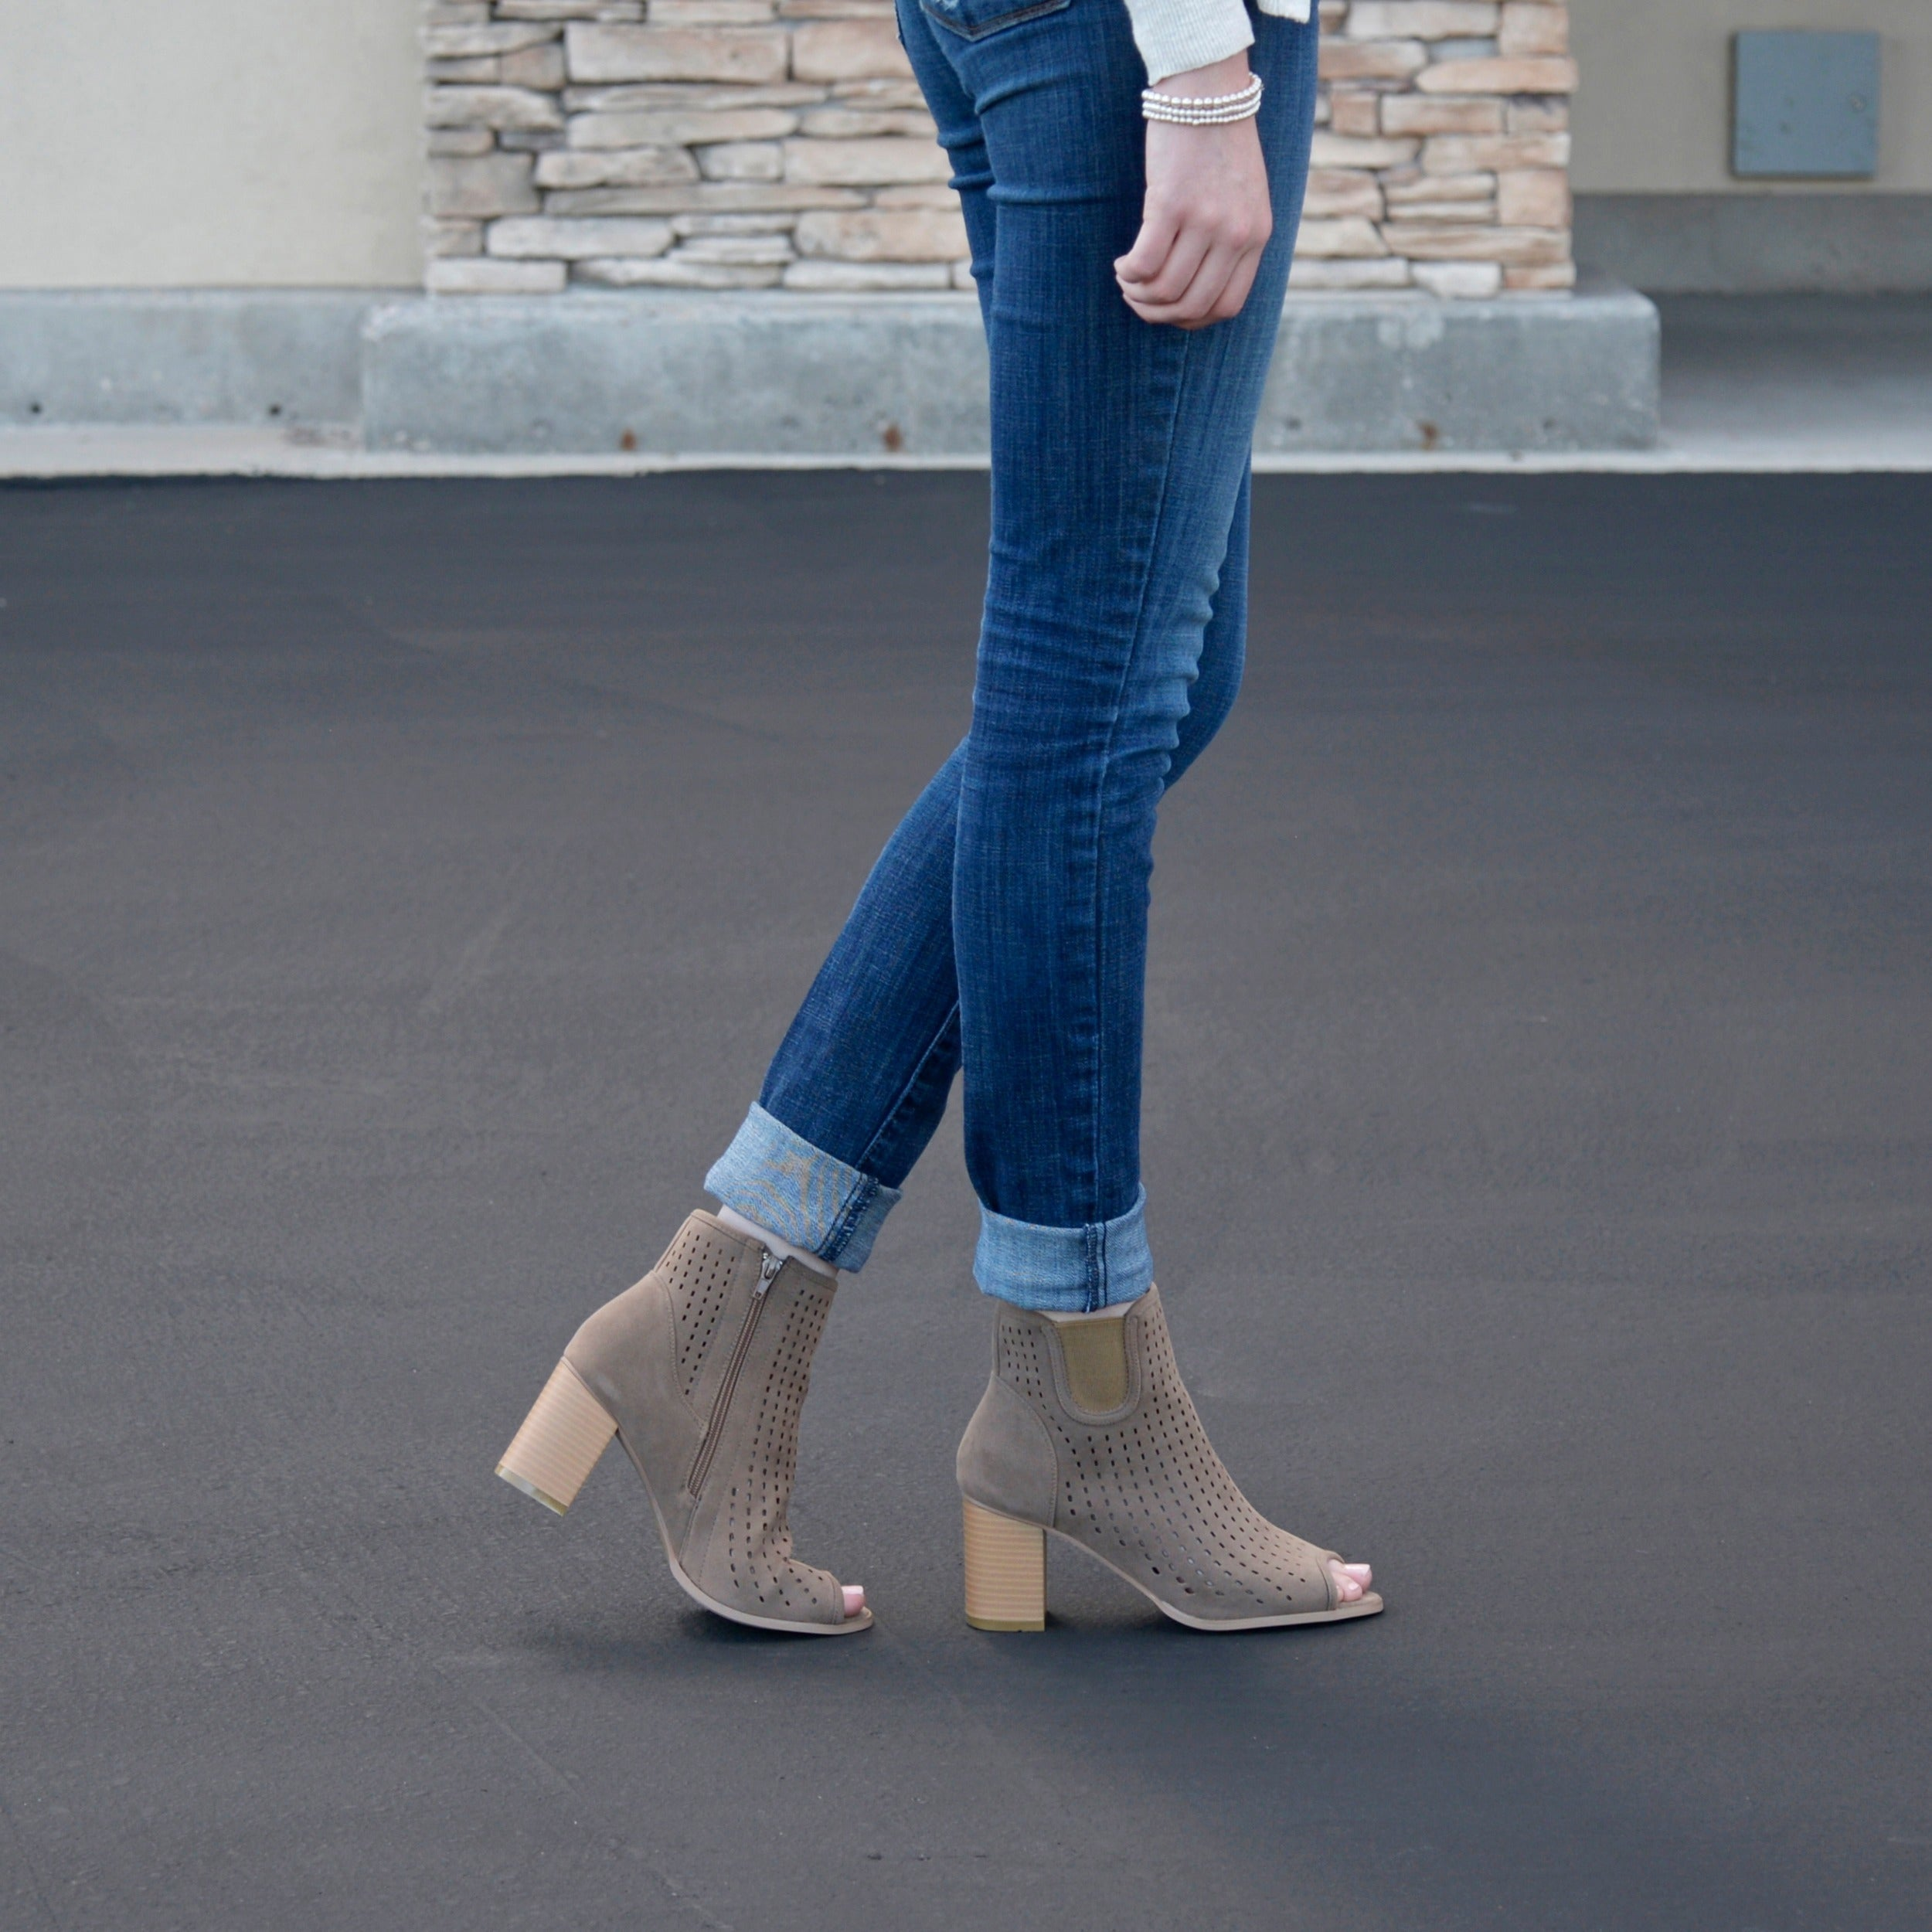 f8b312b266df Shop Journee Collection Women s  Emm  Open Toe Faux Suede Booties - Free  Shipping Today - Overstock - 11332185